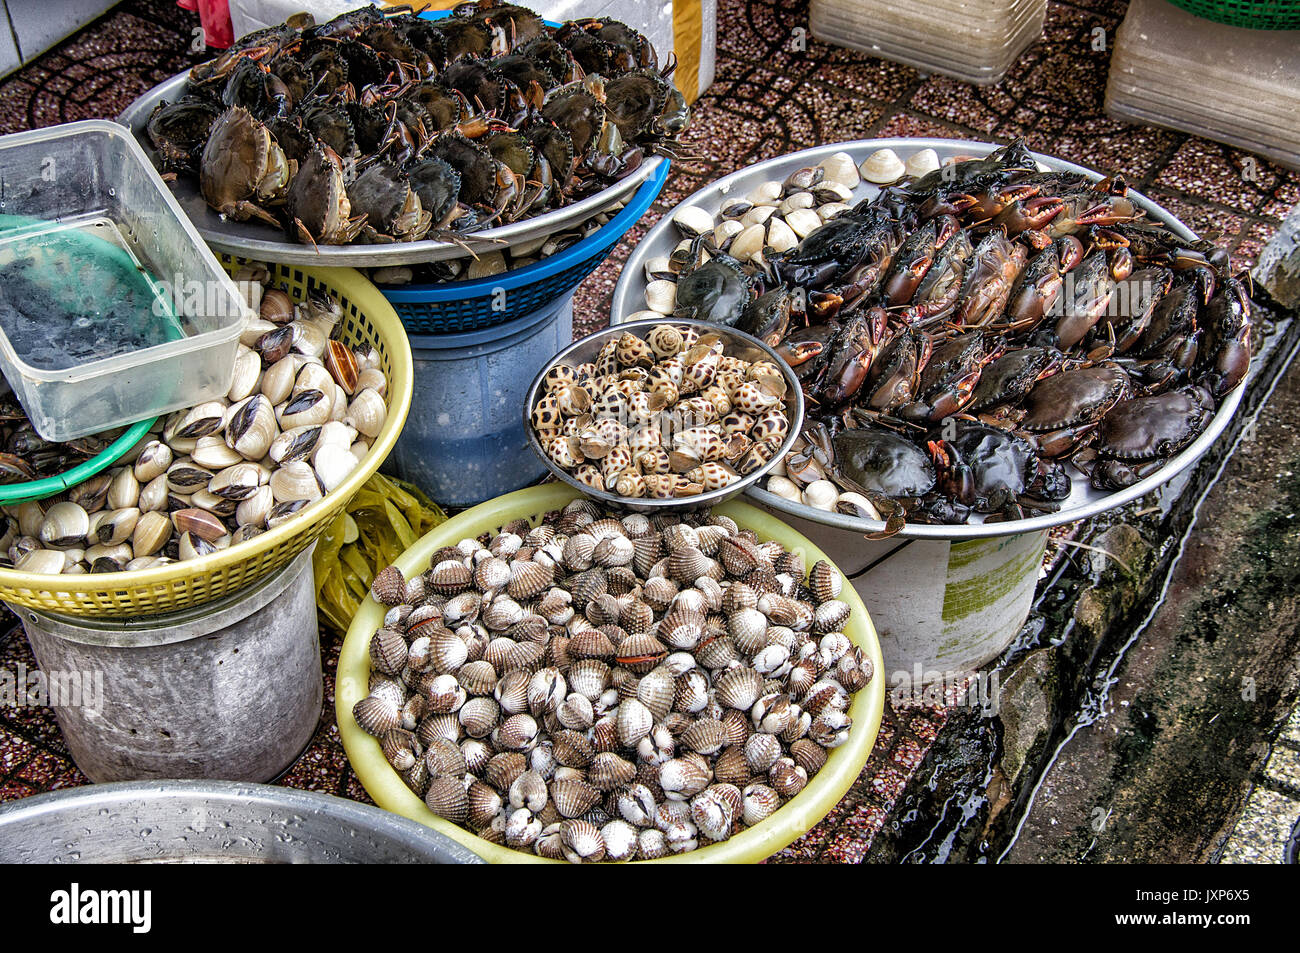 Snail's and crabs for sale in an open air market in Hanoi,  Vietnam. - Stock Image